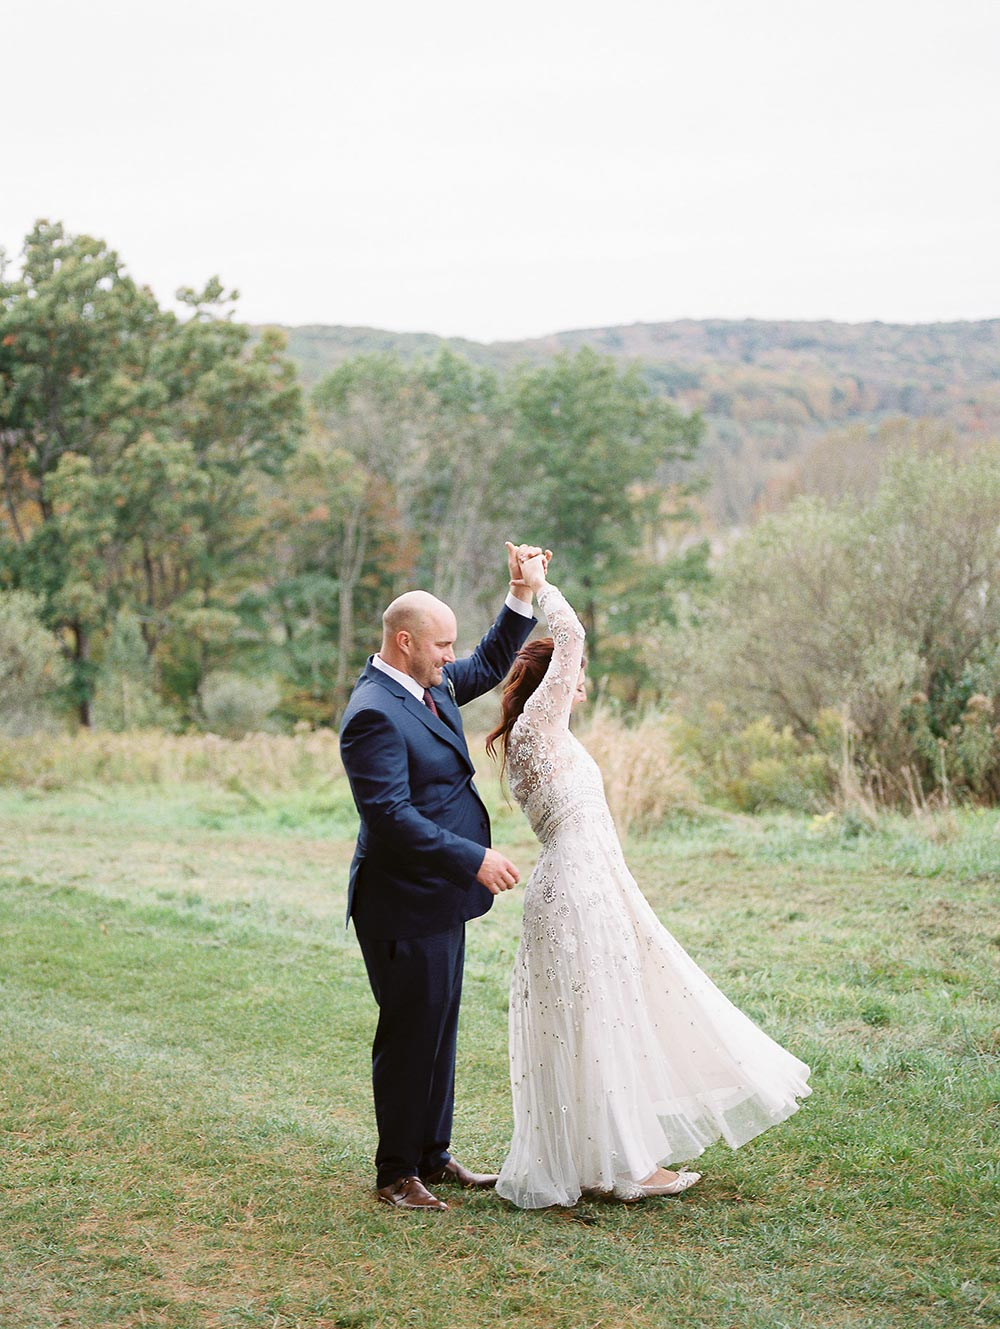 embellished long sleeve wedding dress and navy groom suit